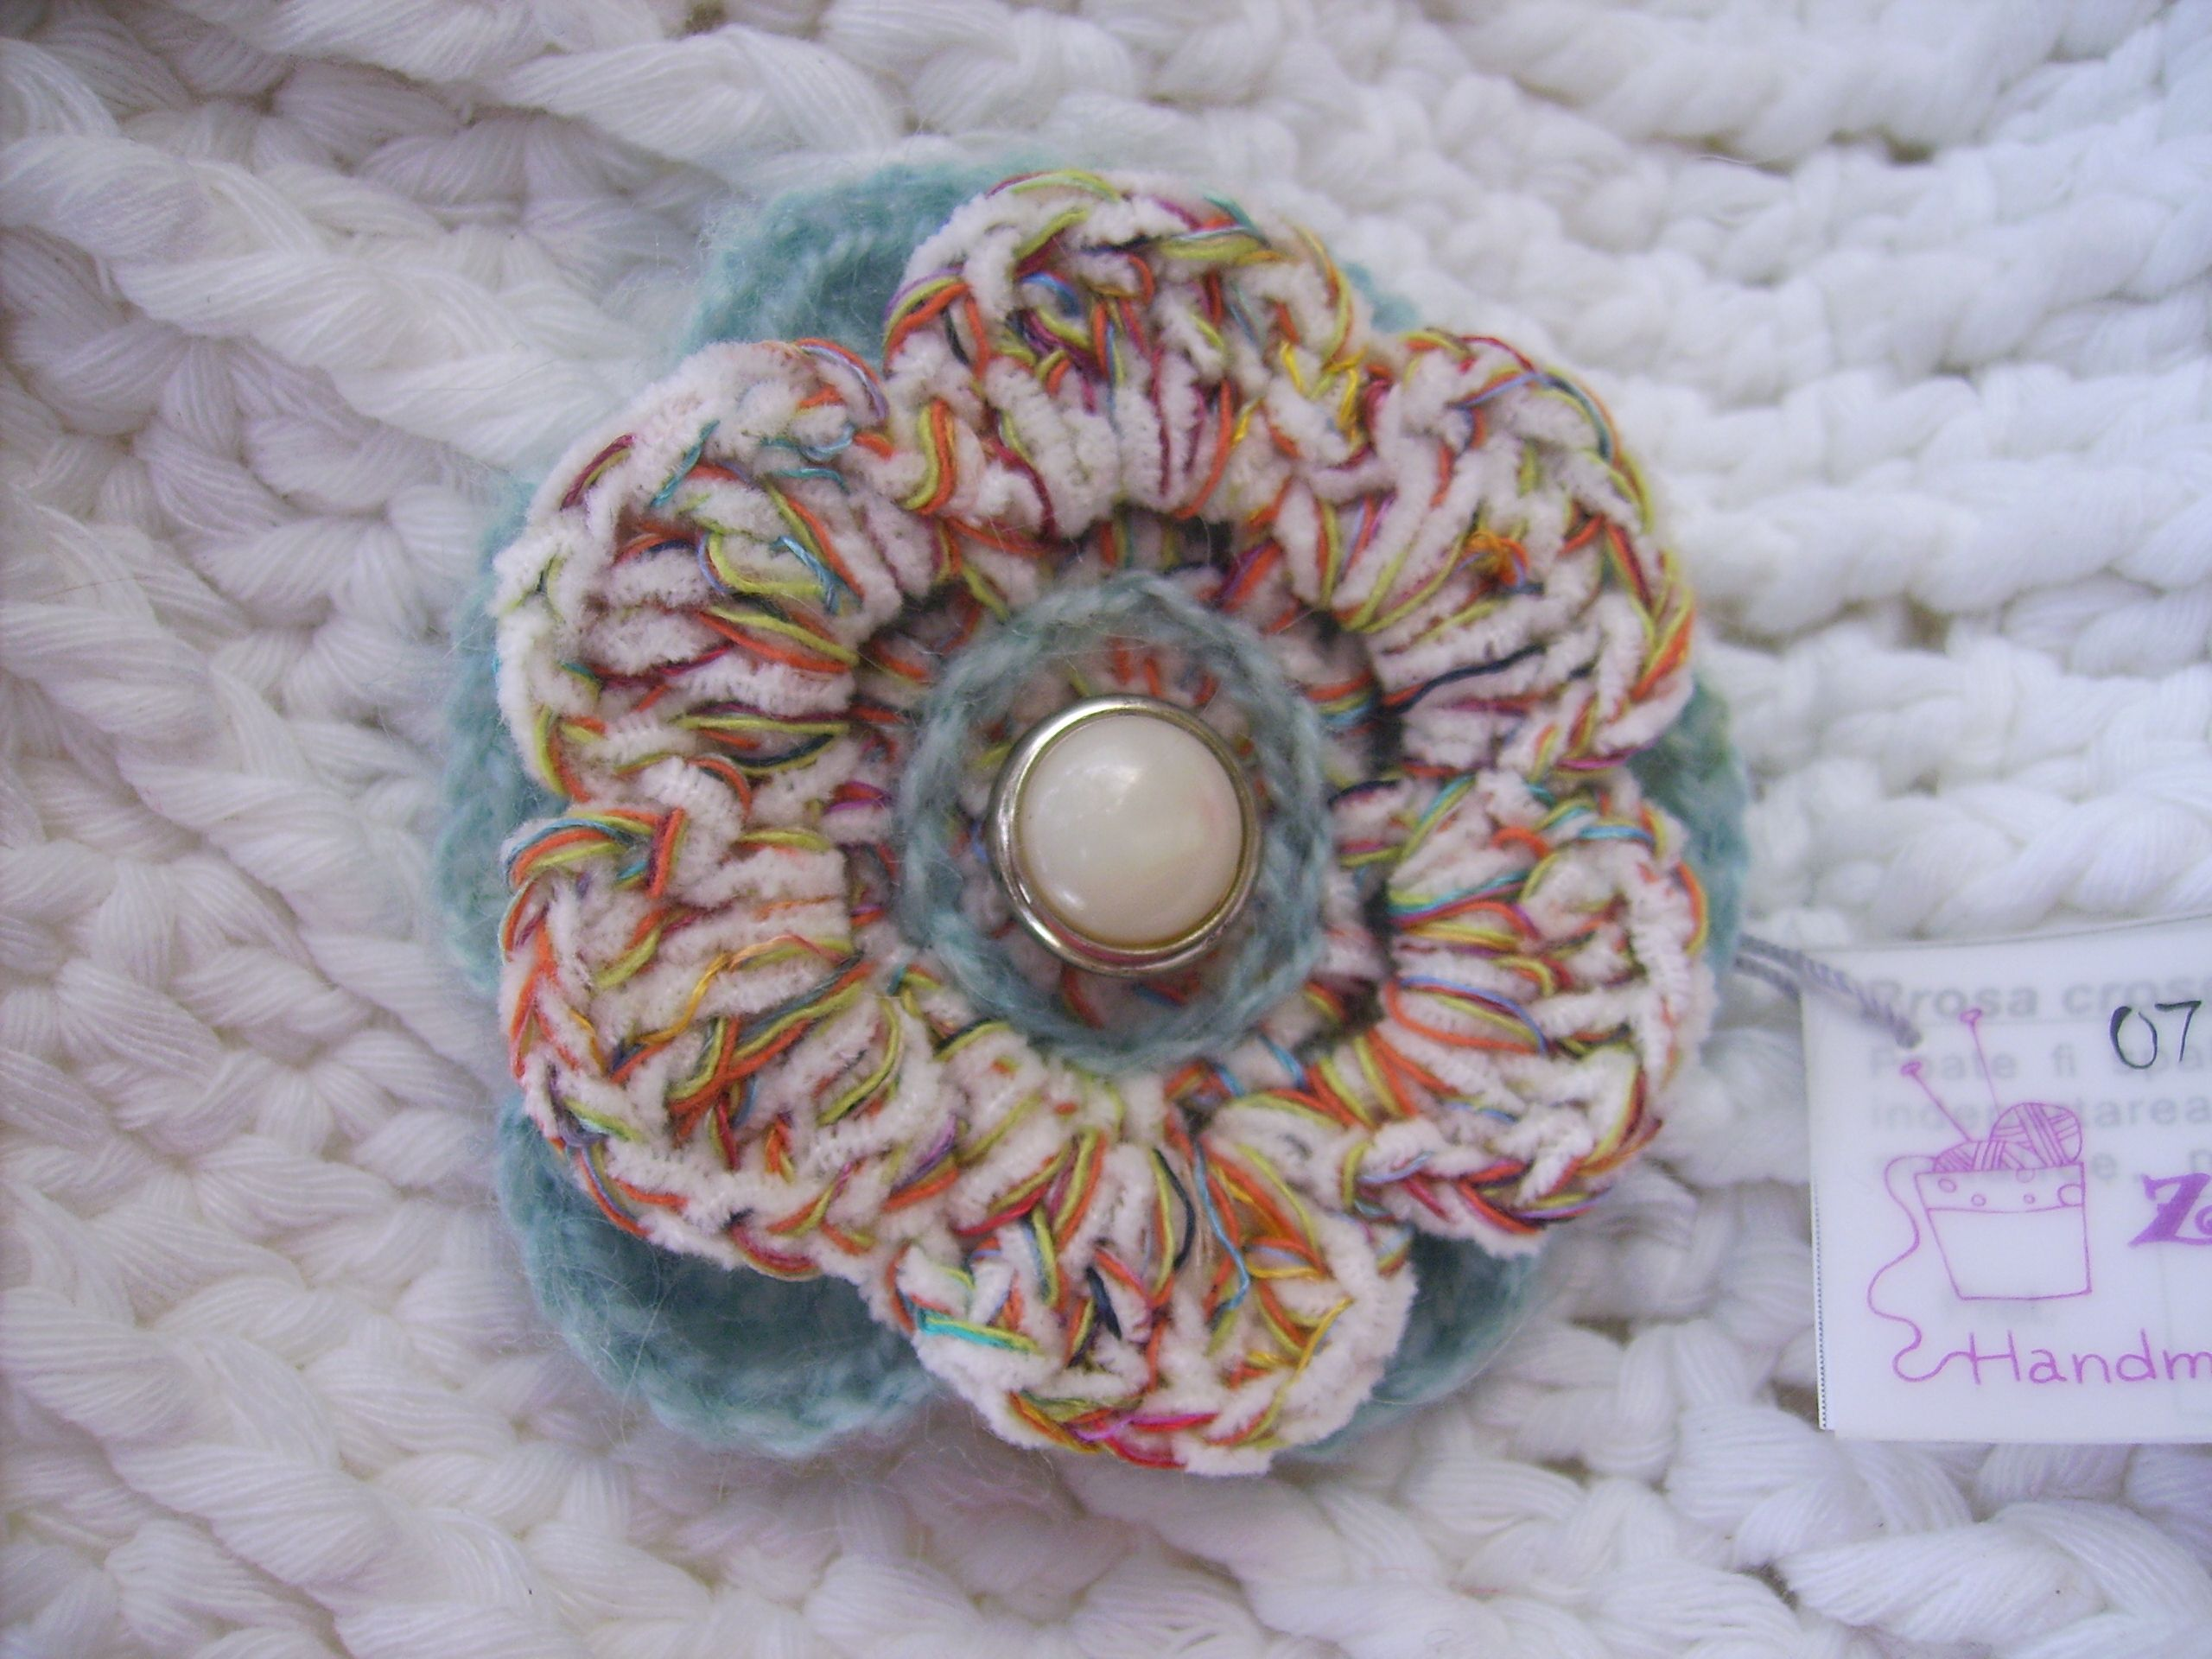 in at sewn diameter stability button approx originals brooch knitted to and hand crocheted cm back brooches inches flower for with centre kooky